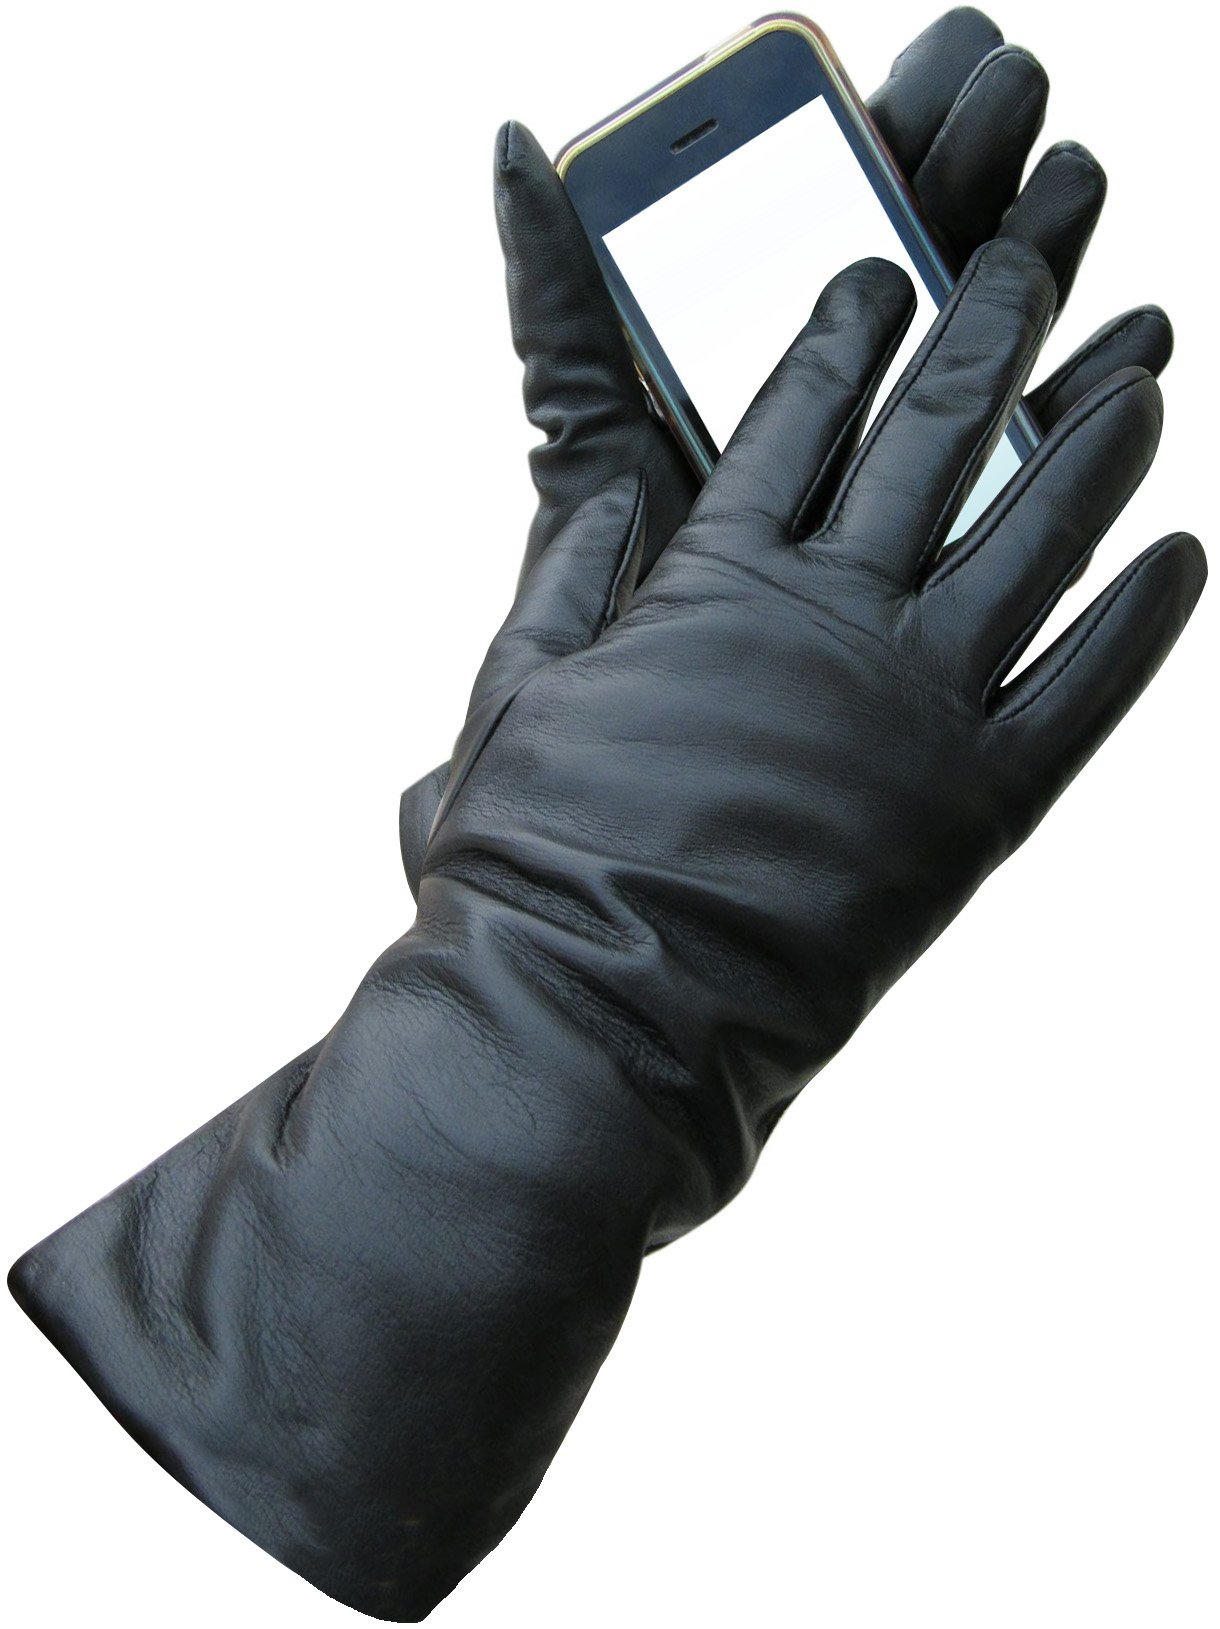 Fownes Women's Cashmere Lined Black Conductive Lambskin Leather Gloves 7.5/L by Fownes Brothers